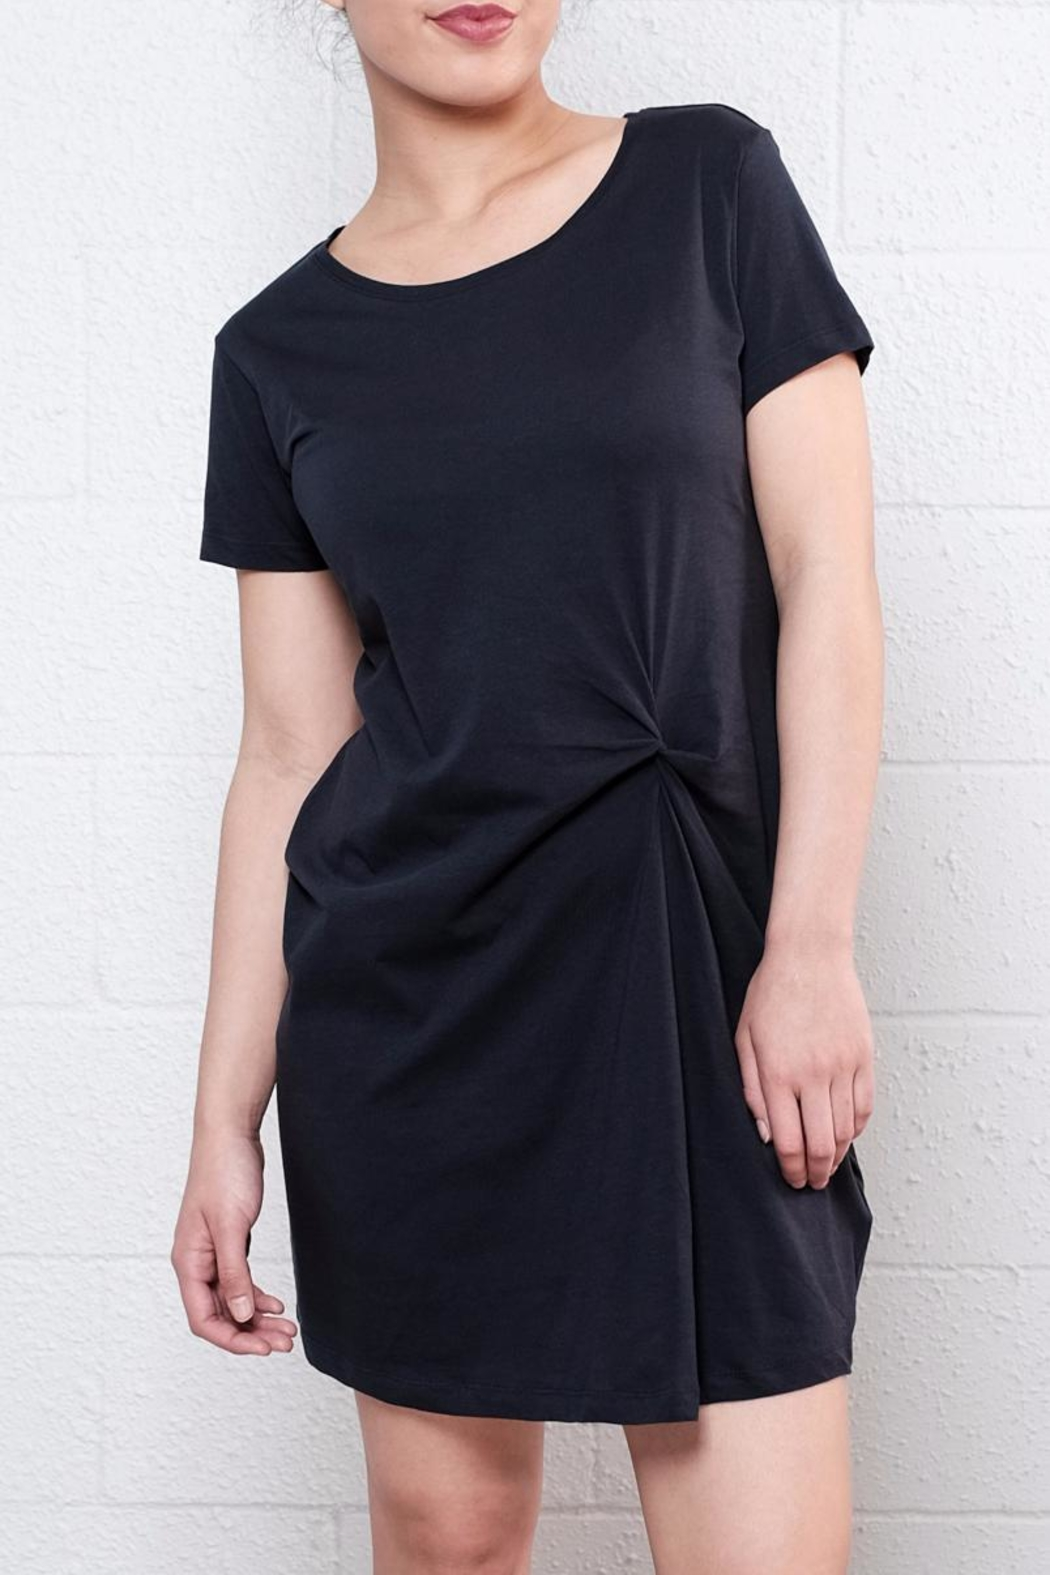 Knot Front Jersey Dress - Black Jacqueline de Yong Outlet Visit Free Shipping 100% Authentic Cheap Sale Visit New Discount Very Cheap Fashionable AwlUyiiTV